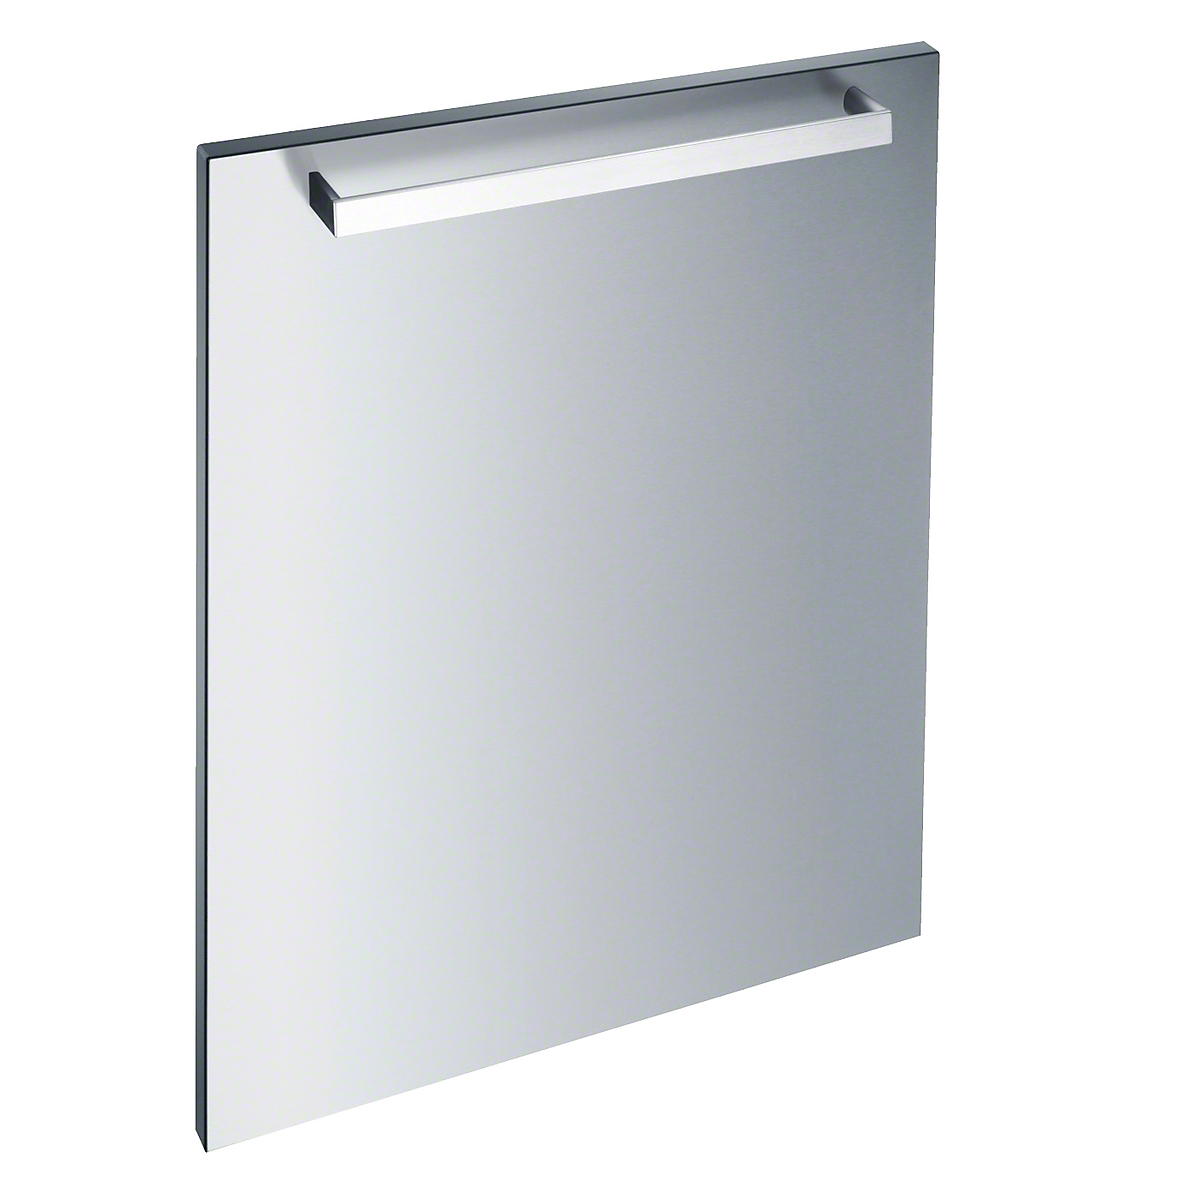 Int. front panel: W x H, 24 x 30 inClean Touch Steel™ with handle in Classic Design for integrated dishwashers.